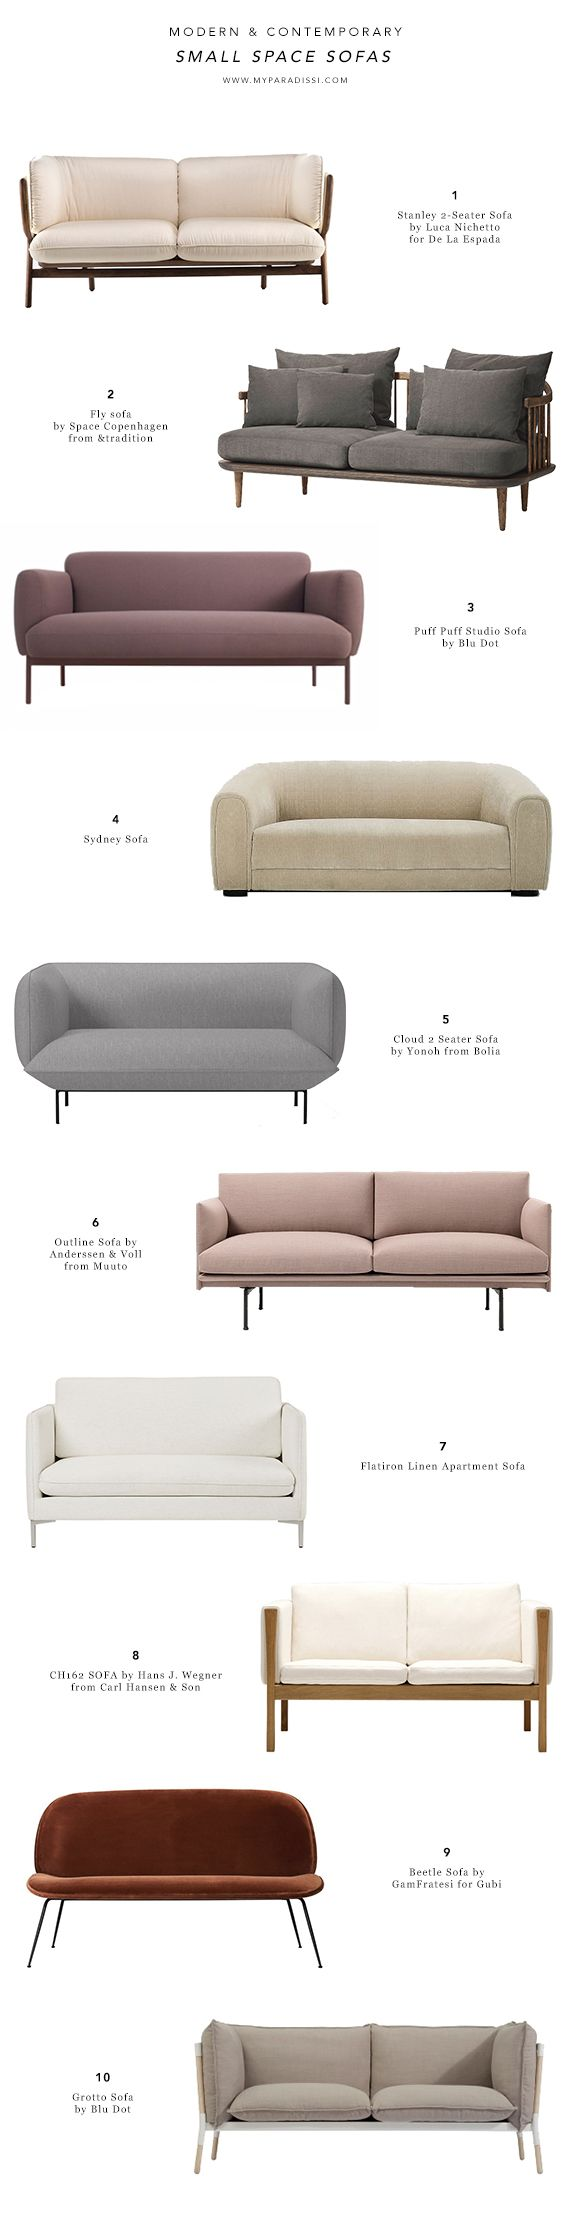 10 BEST: Contemporary Small Space Sofas | Sofas For Small Spaces, Couches For Small Spaces, Small Sofa Designs